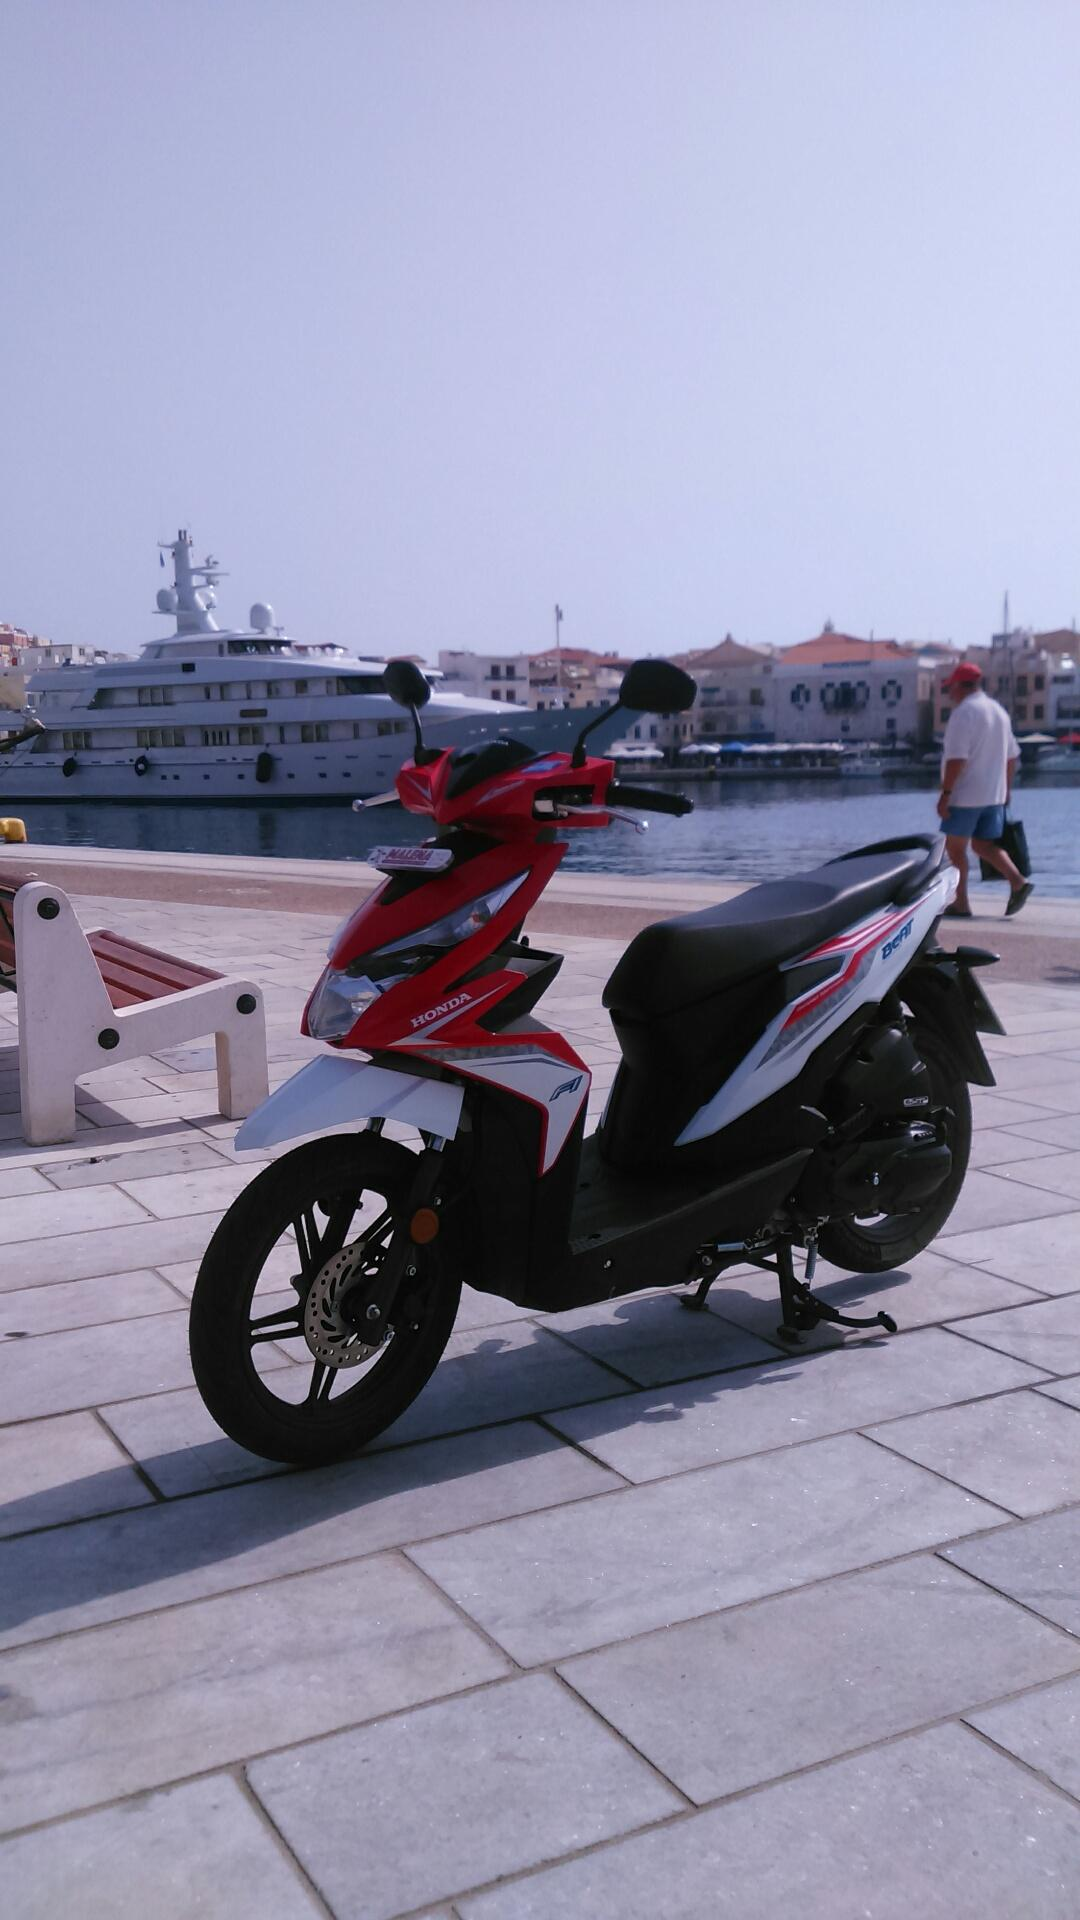 : SYROS MALENA RENTAL MOTO AND CAR